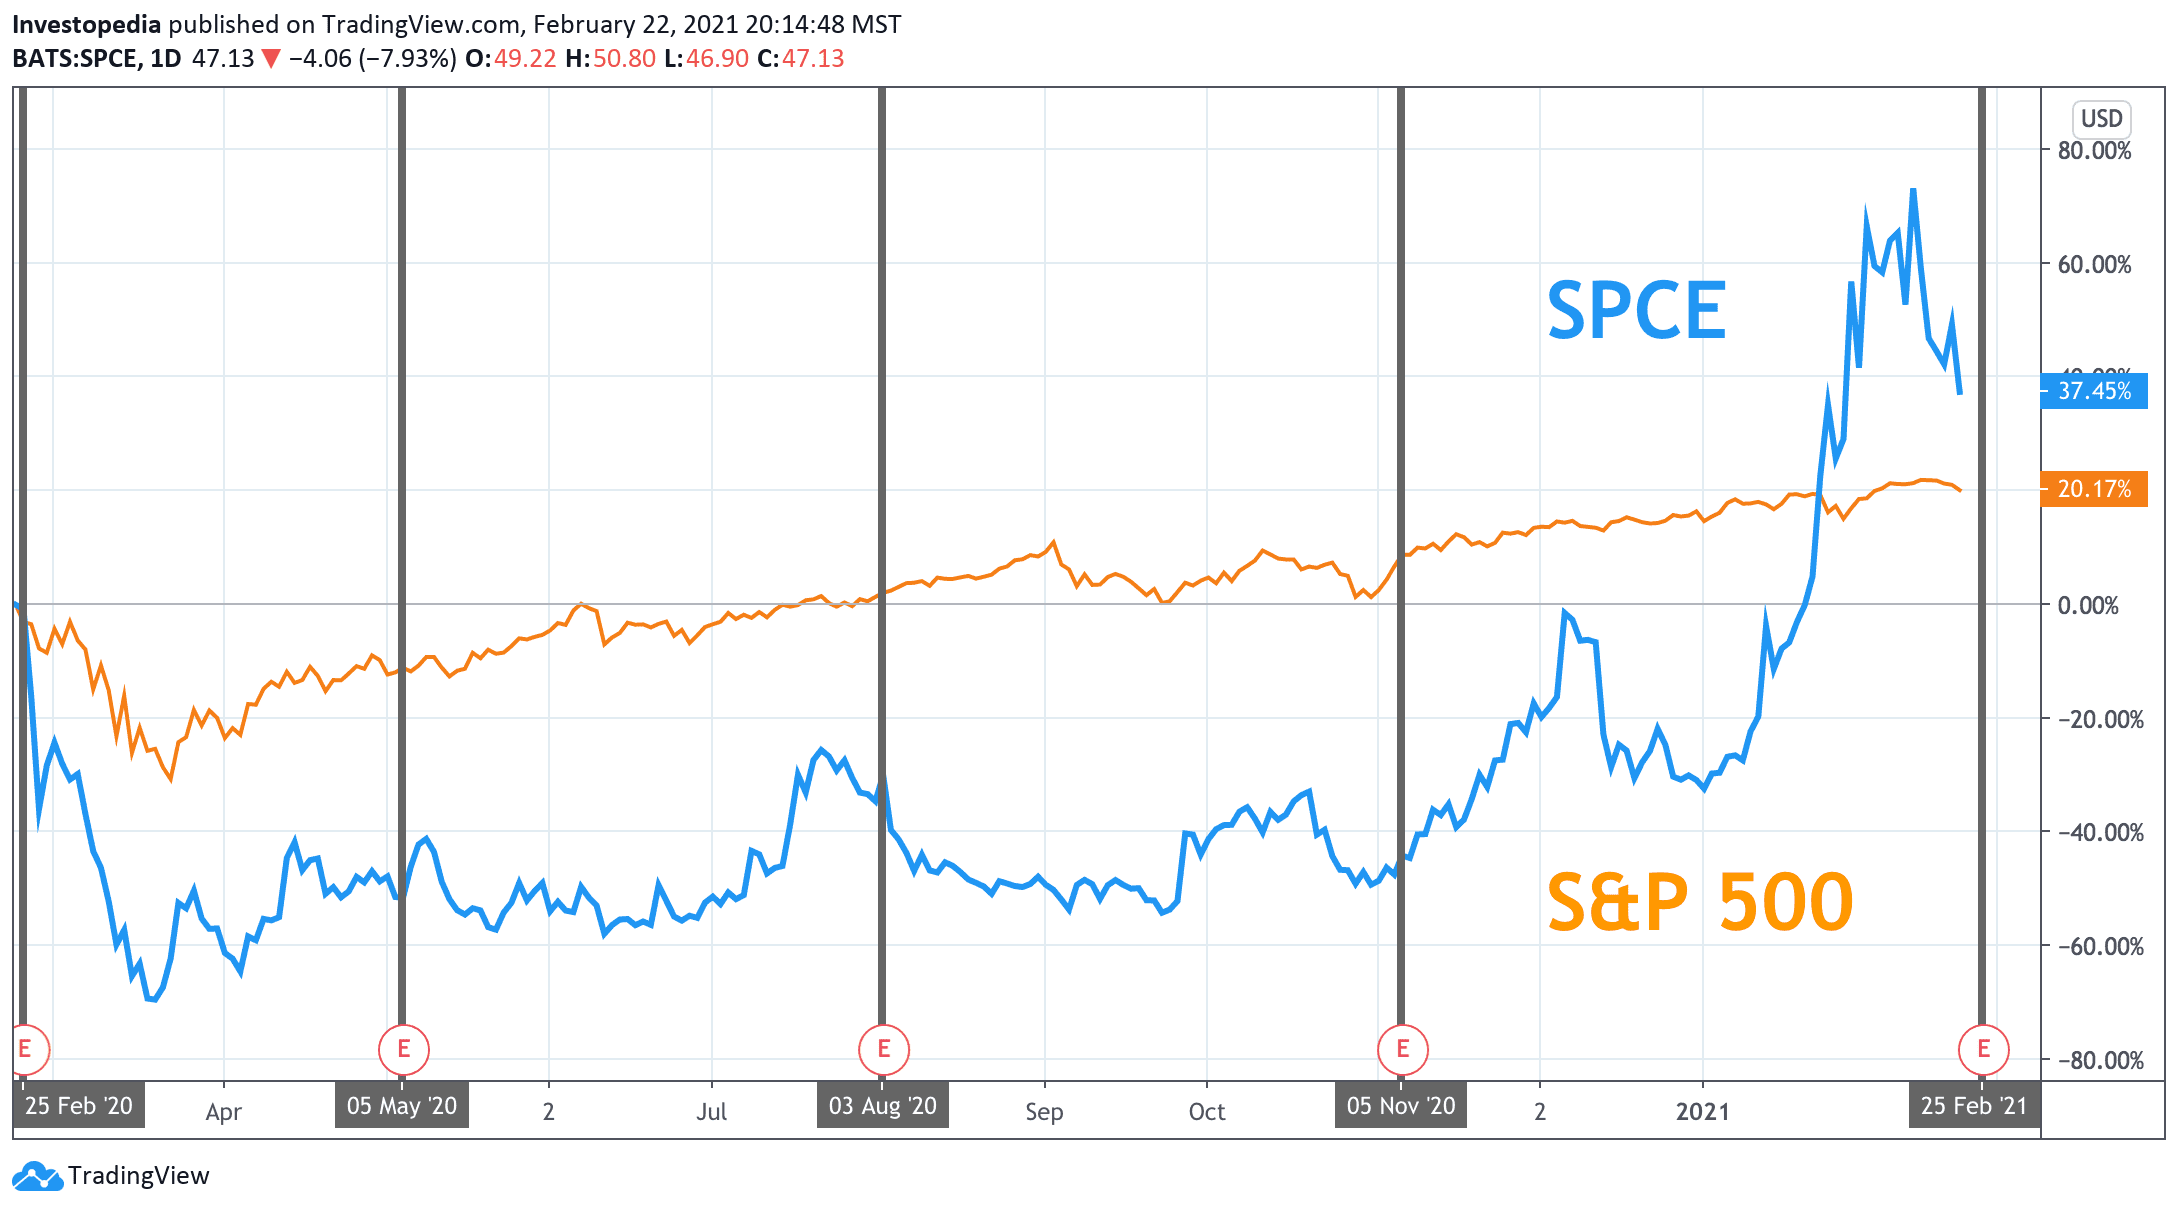 One Year Total Return for S&P 500 and Virgin Galactic